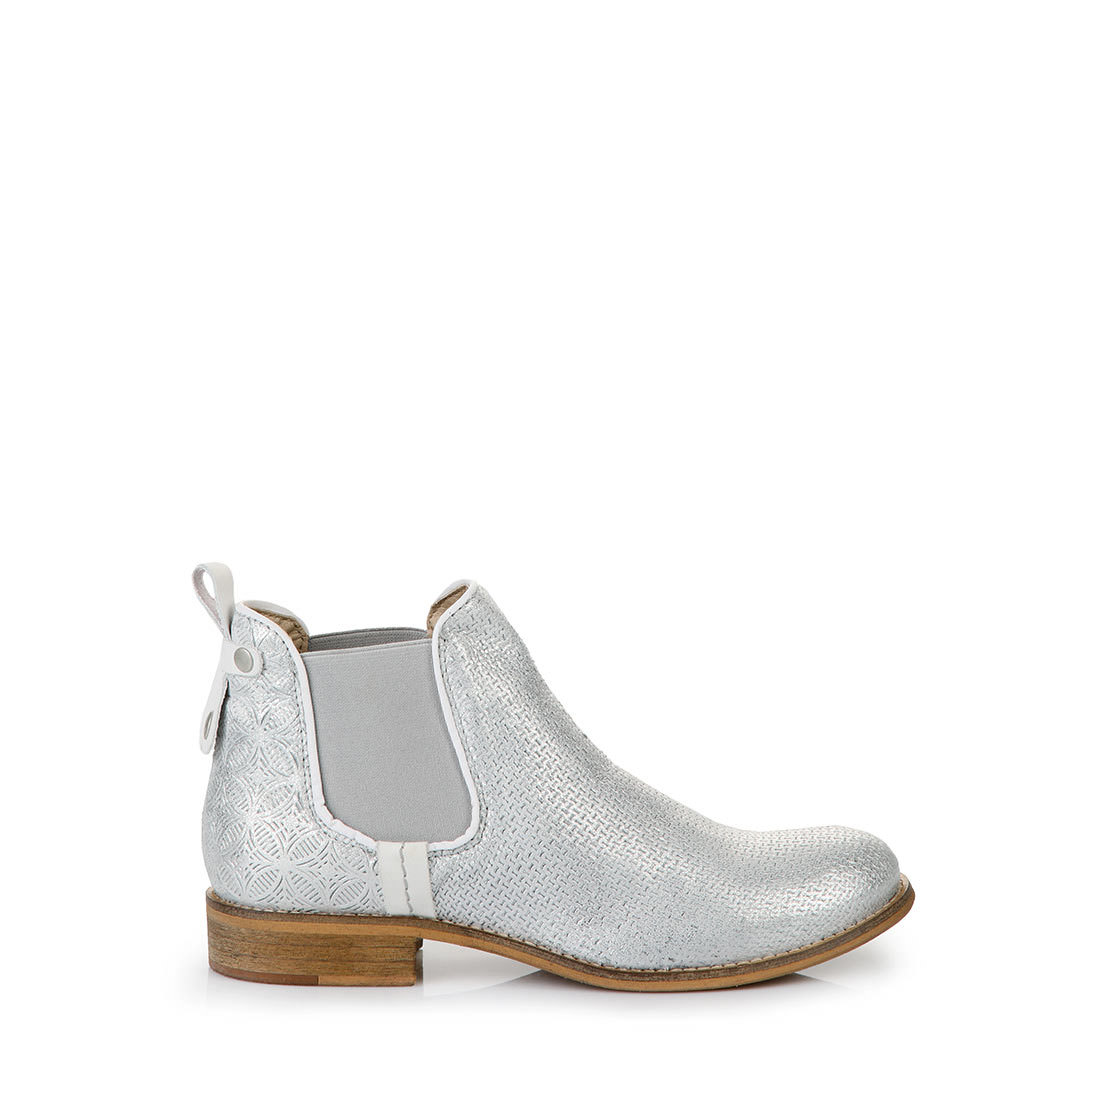 buffalo chelsea boots in silver buy online in buffalo online shop buffalo. Black Bedroom Furniture Sets. Home Design Ideas